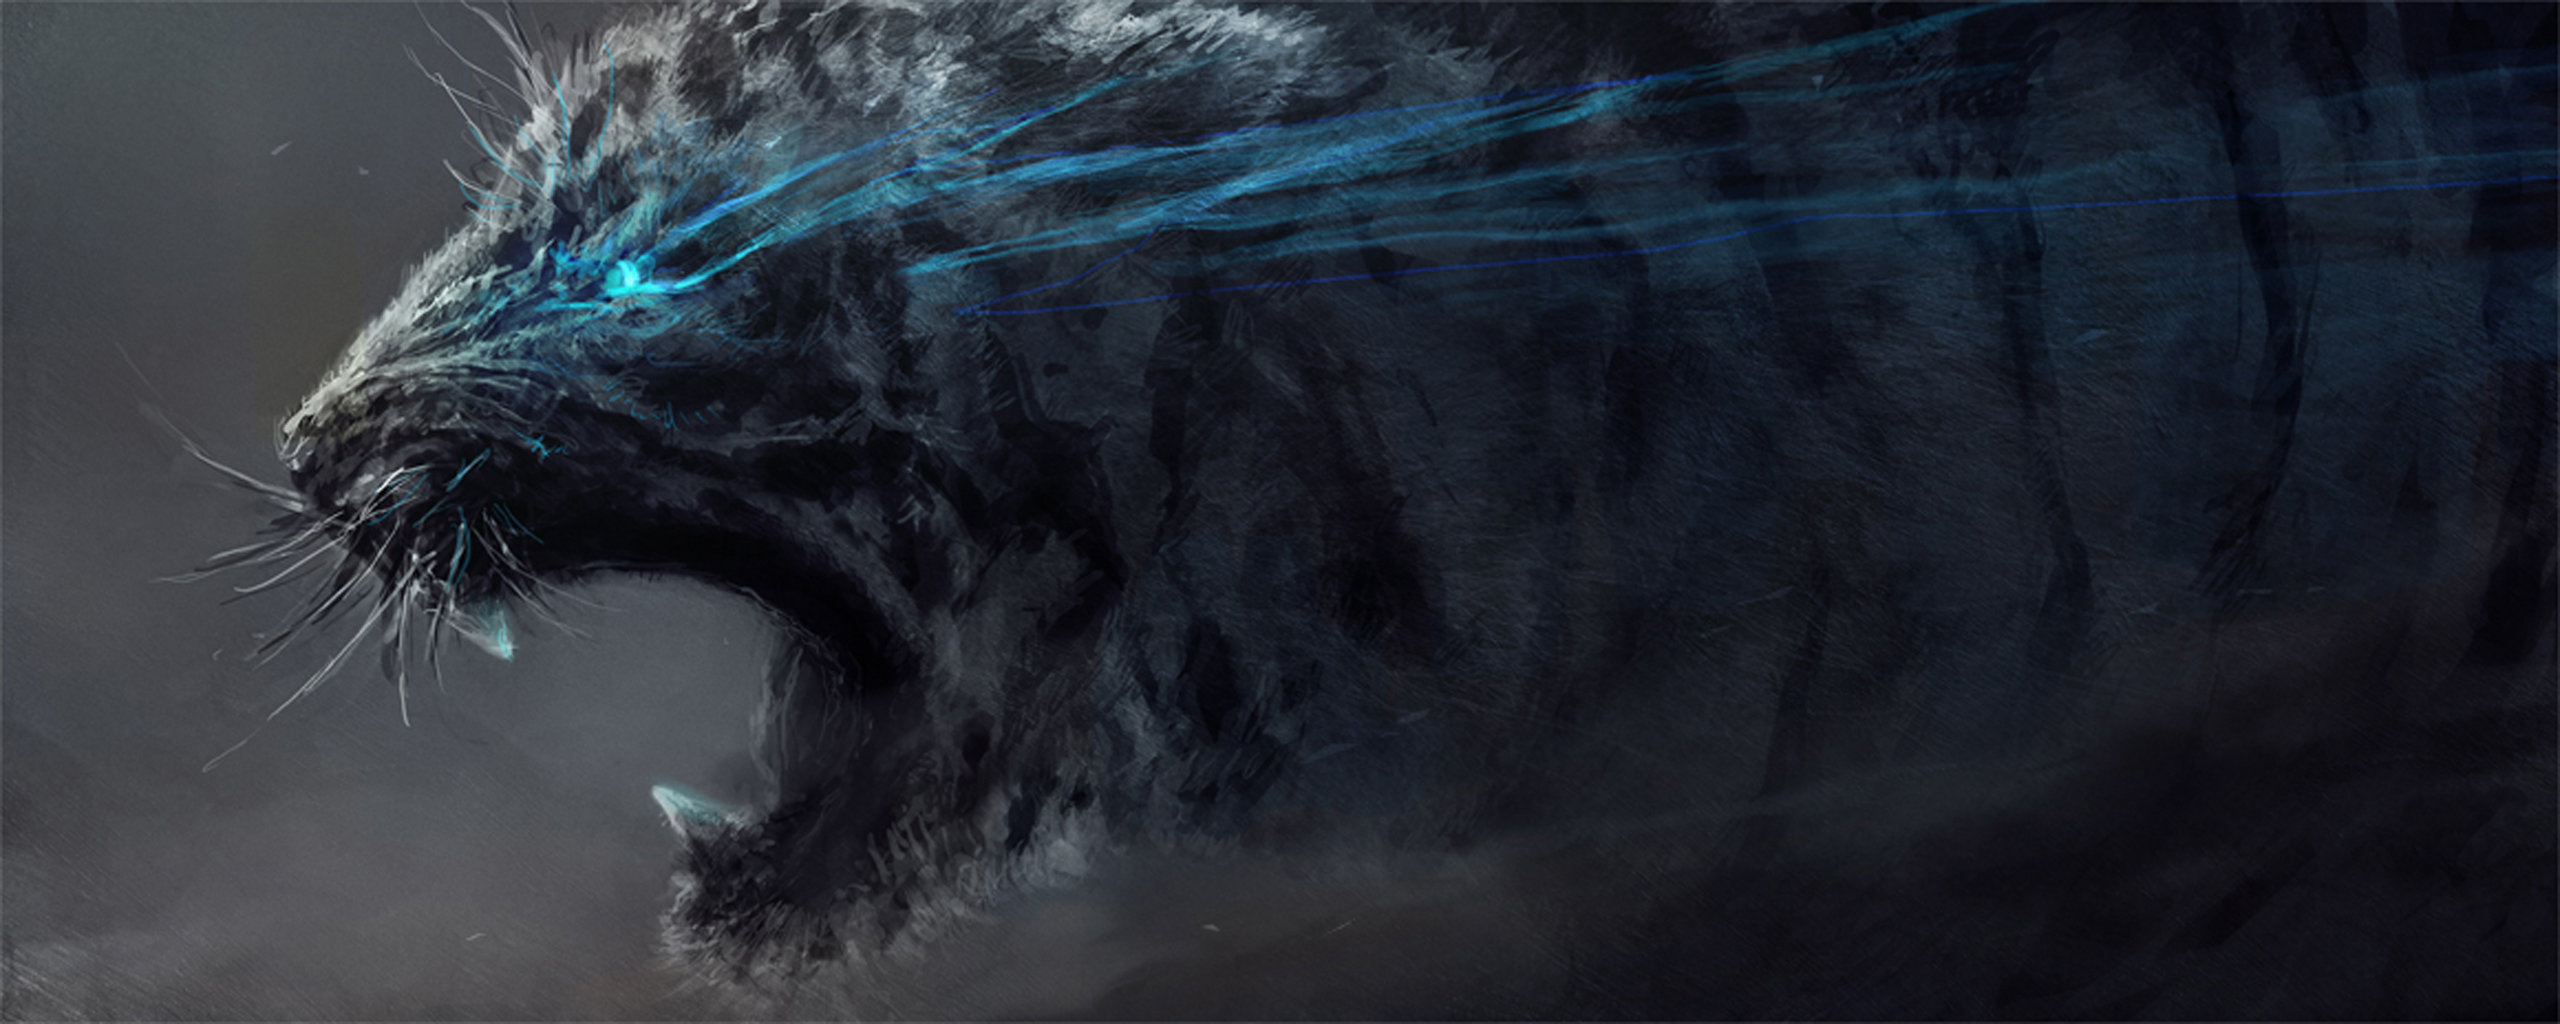 High resolution Tiger dual screen 2560x1024 wallpaper ID:116402 for computer